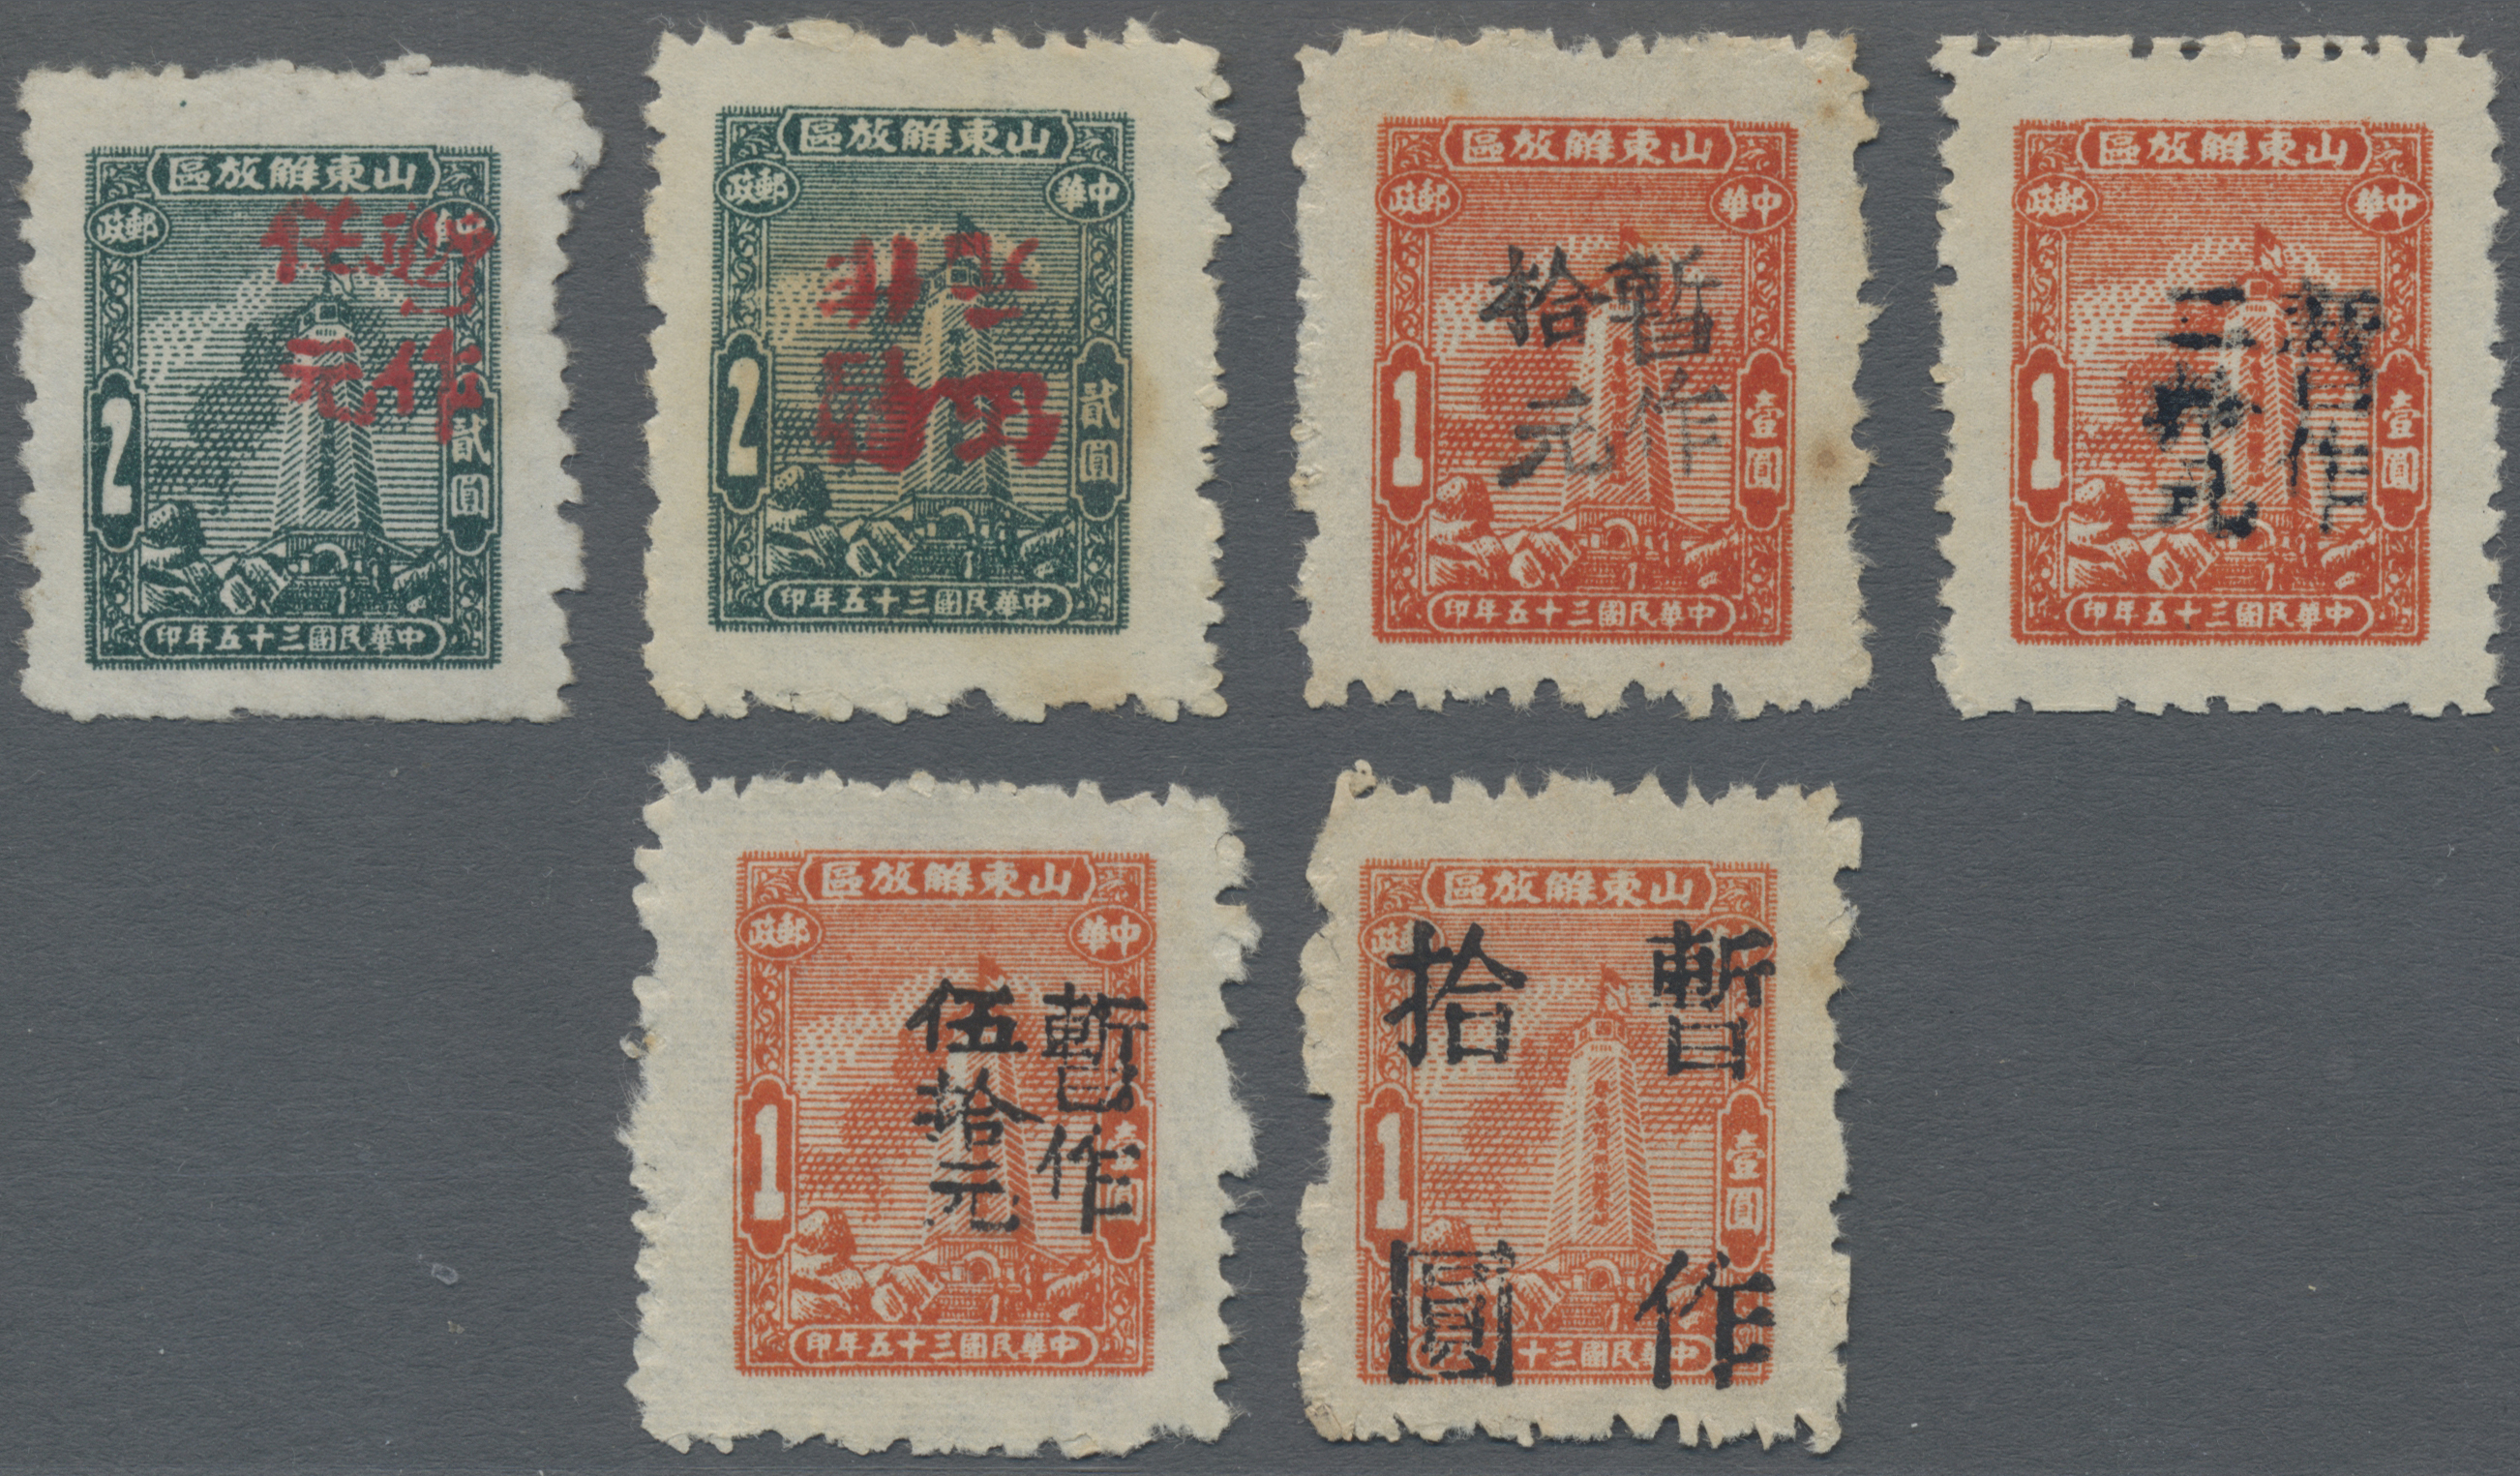 Lot 05081 - China - Volksrepublik - Provinzen  -  Auktionshaus Christoph Gärtner GmbH & Co. KG Sale #46 Special Auction China - including Liberated Areas